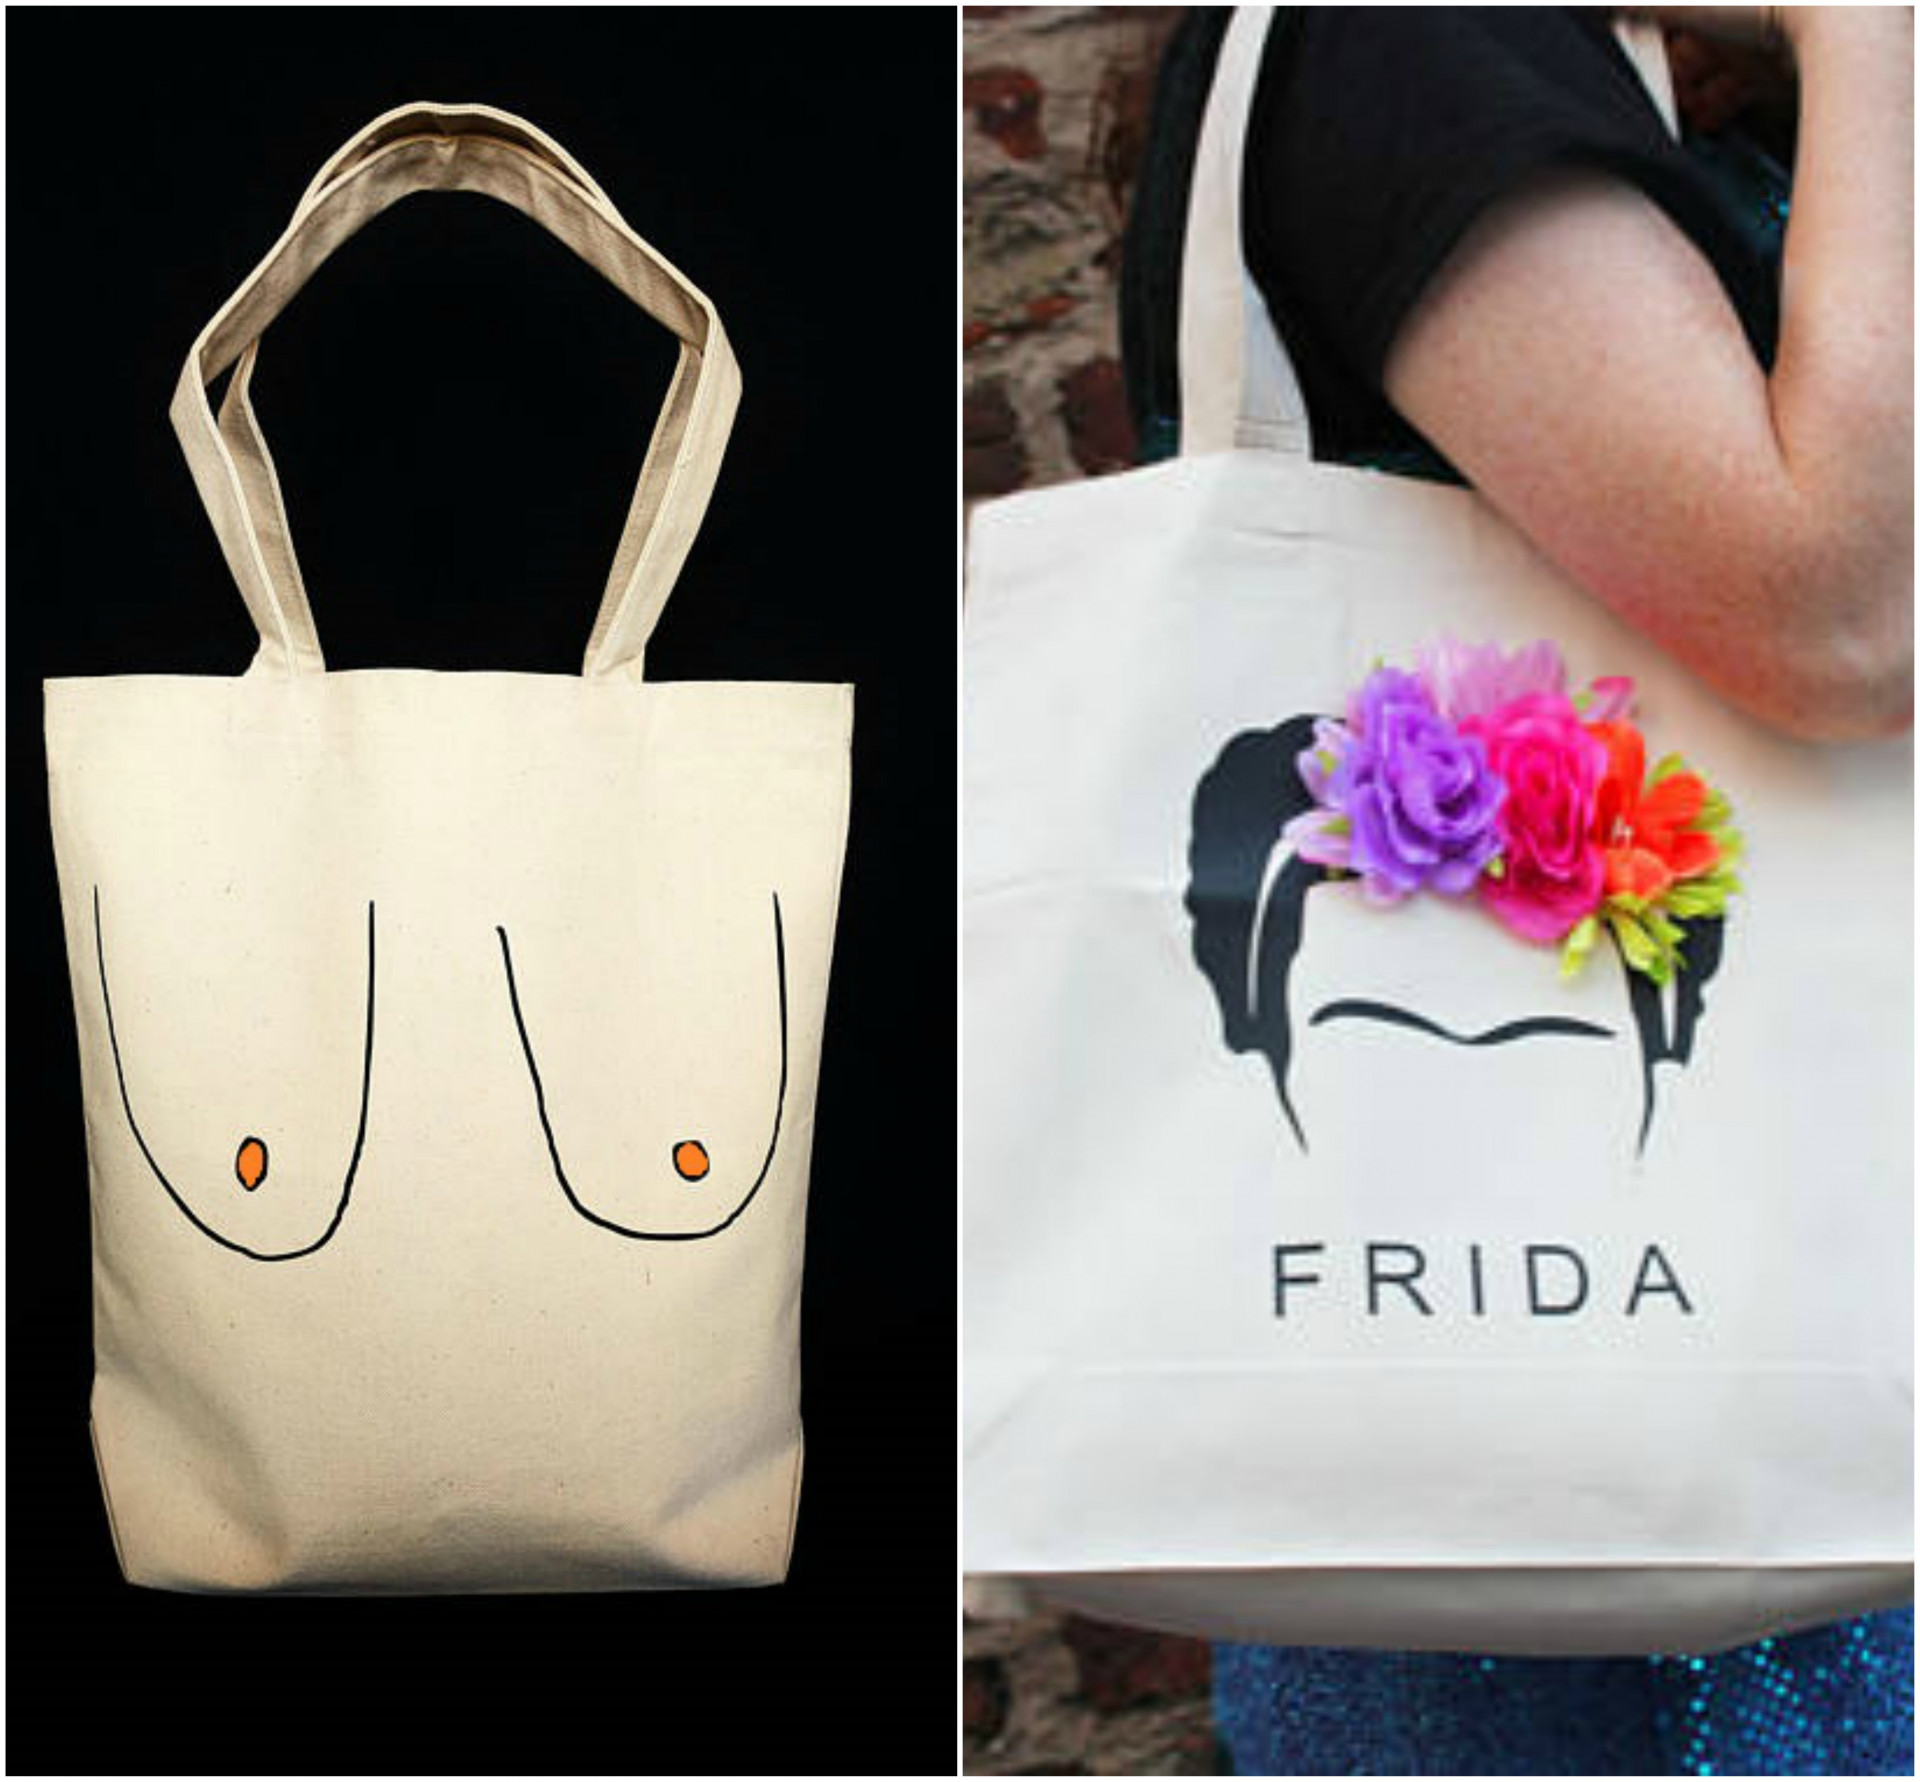 https://www.etsy.com/it/listing/555634349/frida-kahlo-tote-bag-frida-bag-3d-flower?ga_order=most_relevant&ga_search_type=all&ga_view_type=gallery&ga_search_query=frida%20kahlo%20bag&ref=sc_gallery_1&plkey=1bc69fa1985cbbd54a504a88105958e42e82fdd2:555634349